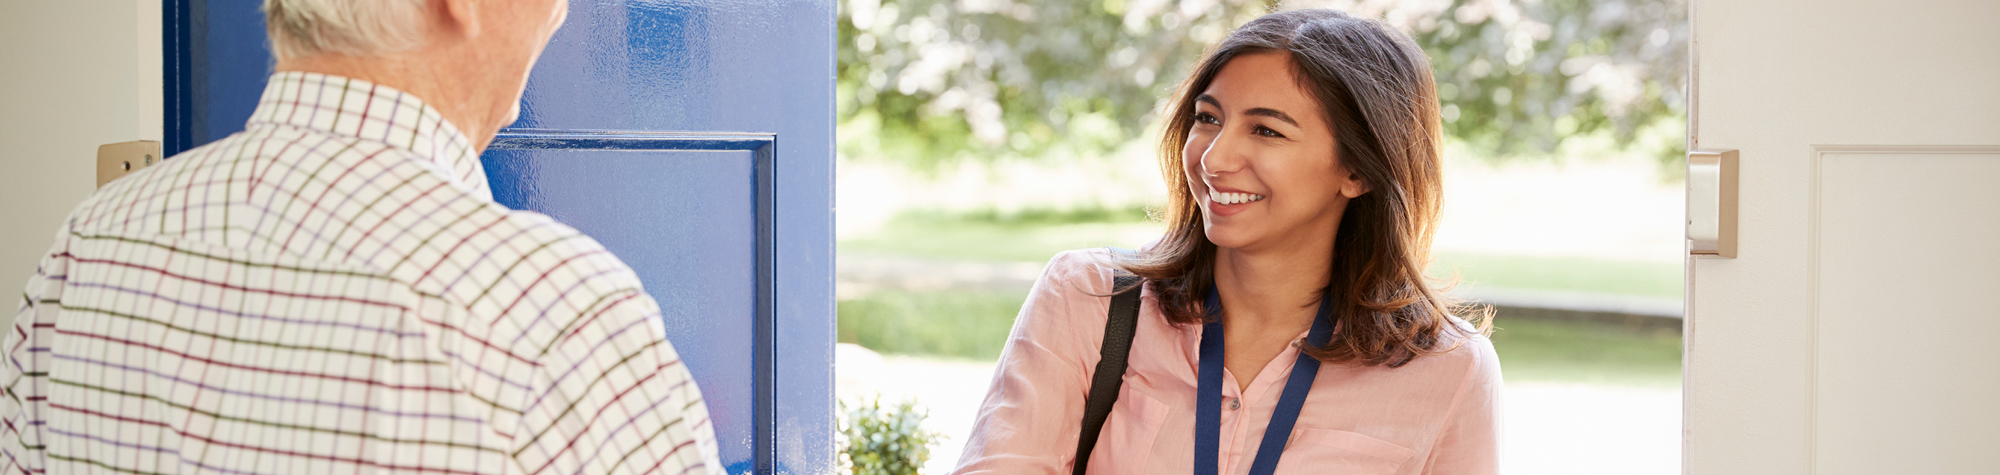 Search Consultancy Healthcare Recruitment Services Header Image Featuring a smiling, female social care professional with brown hair, a pink shirt and blue healthcare lanyard.